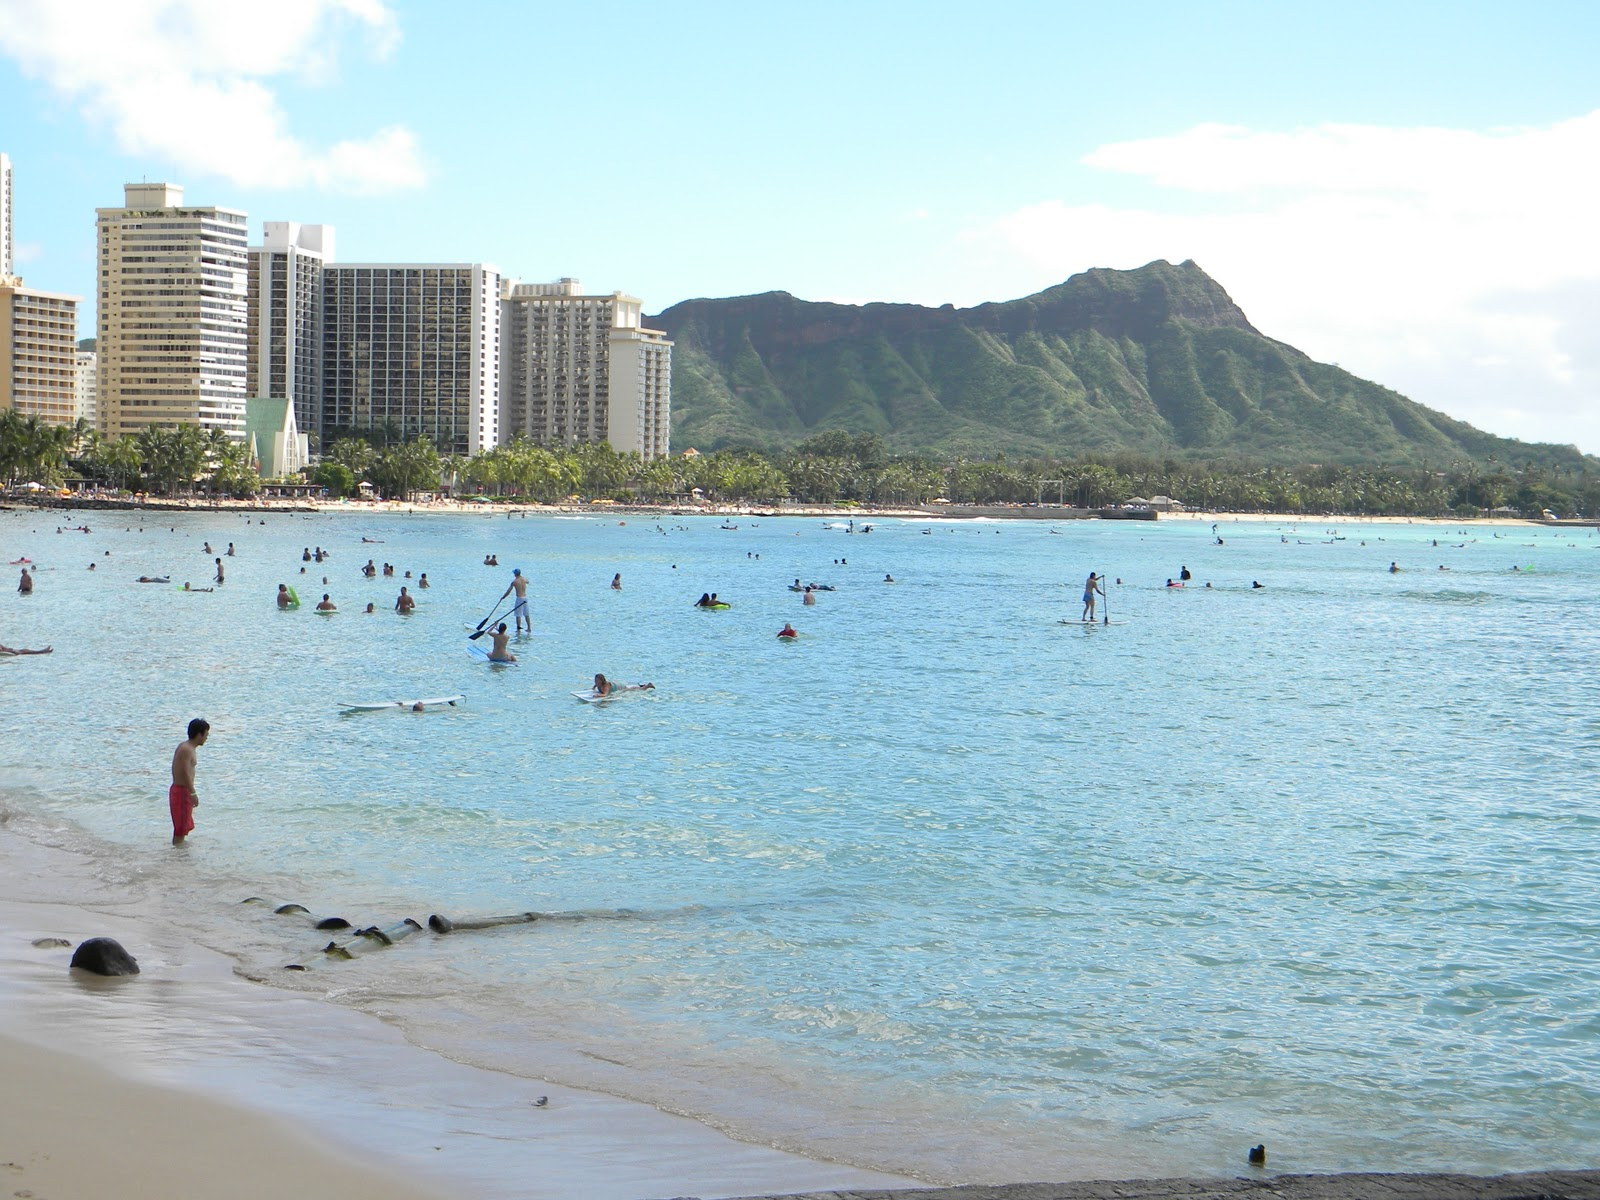 All Hawaii News: Hawaii tourism up, Honolulu foreclosures